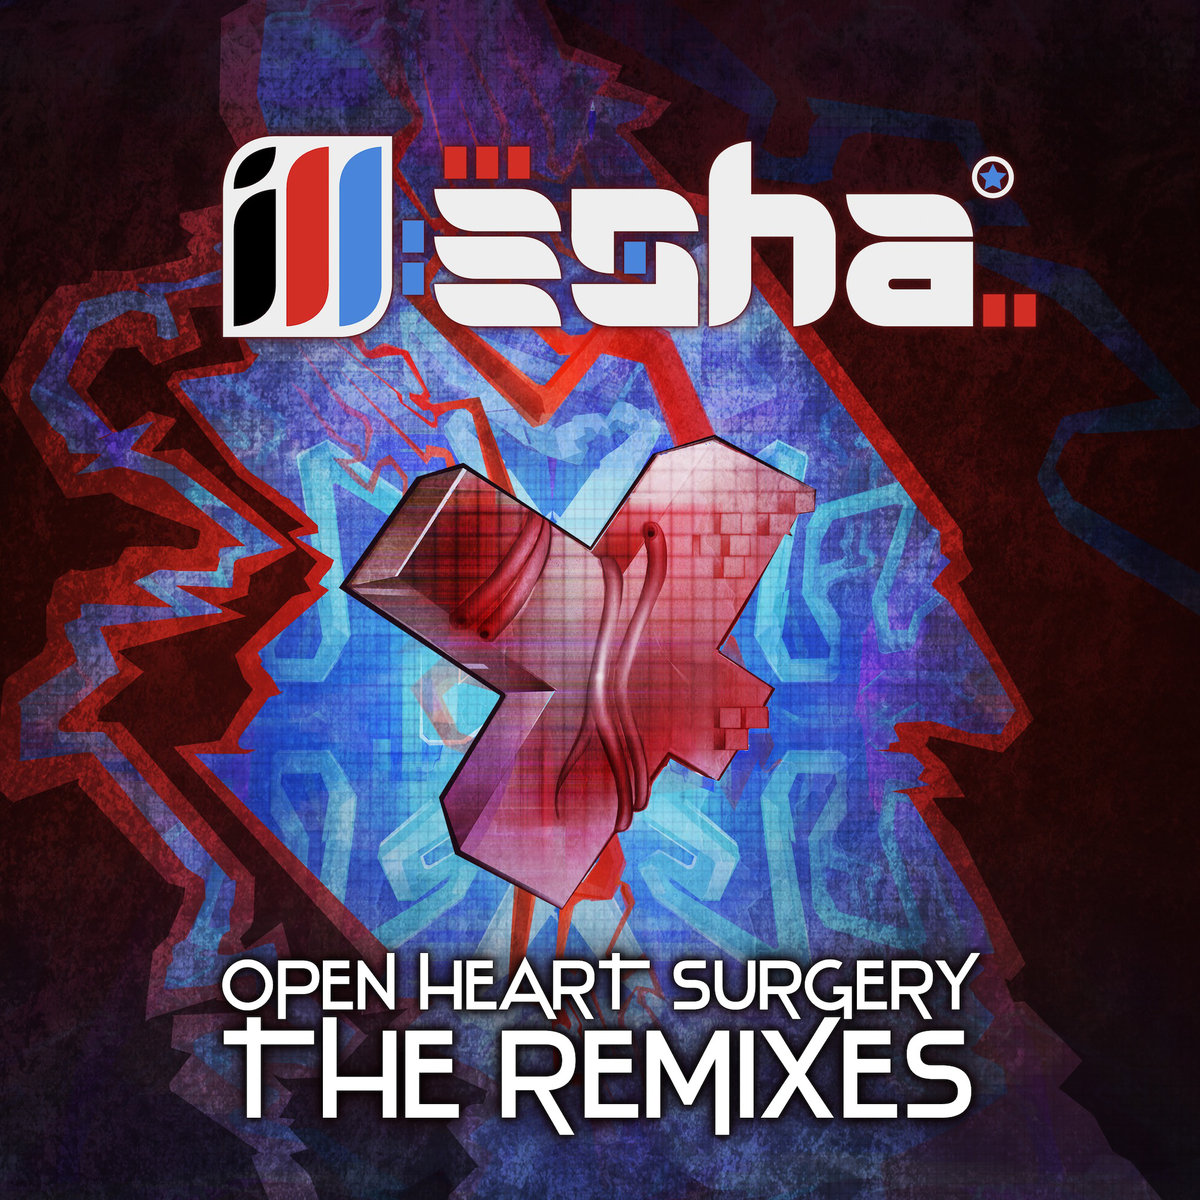 ill-esha - Open Heart Surgery: The Remixes